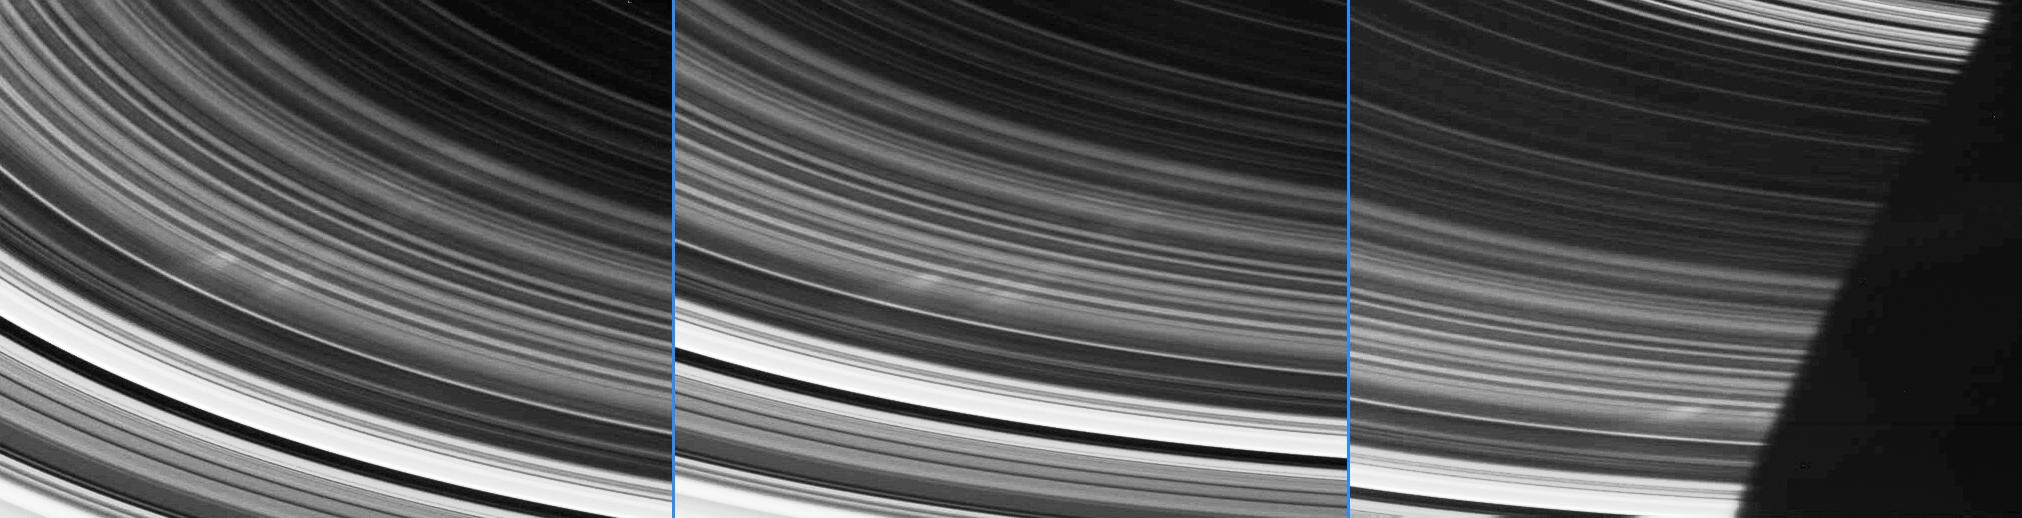 This is an image of the spokes inside Saturn's rings.